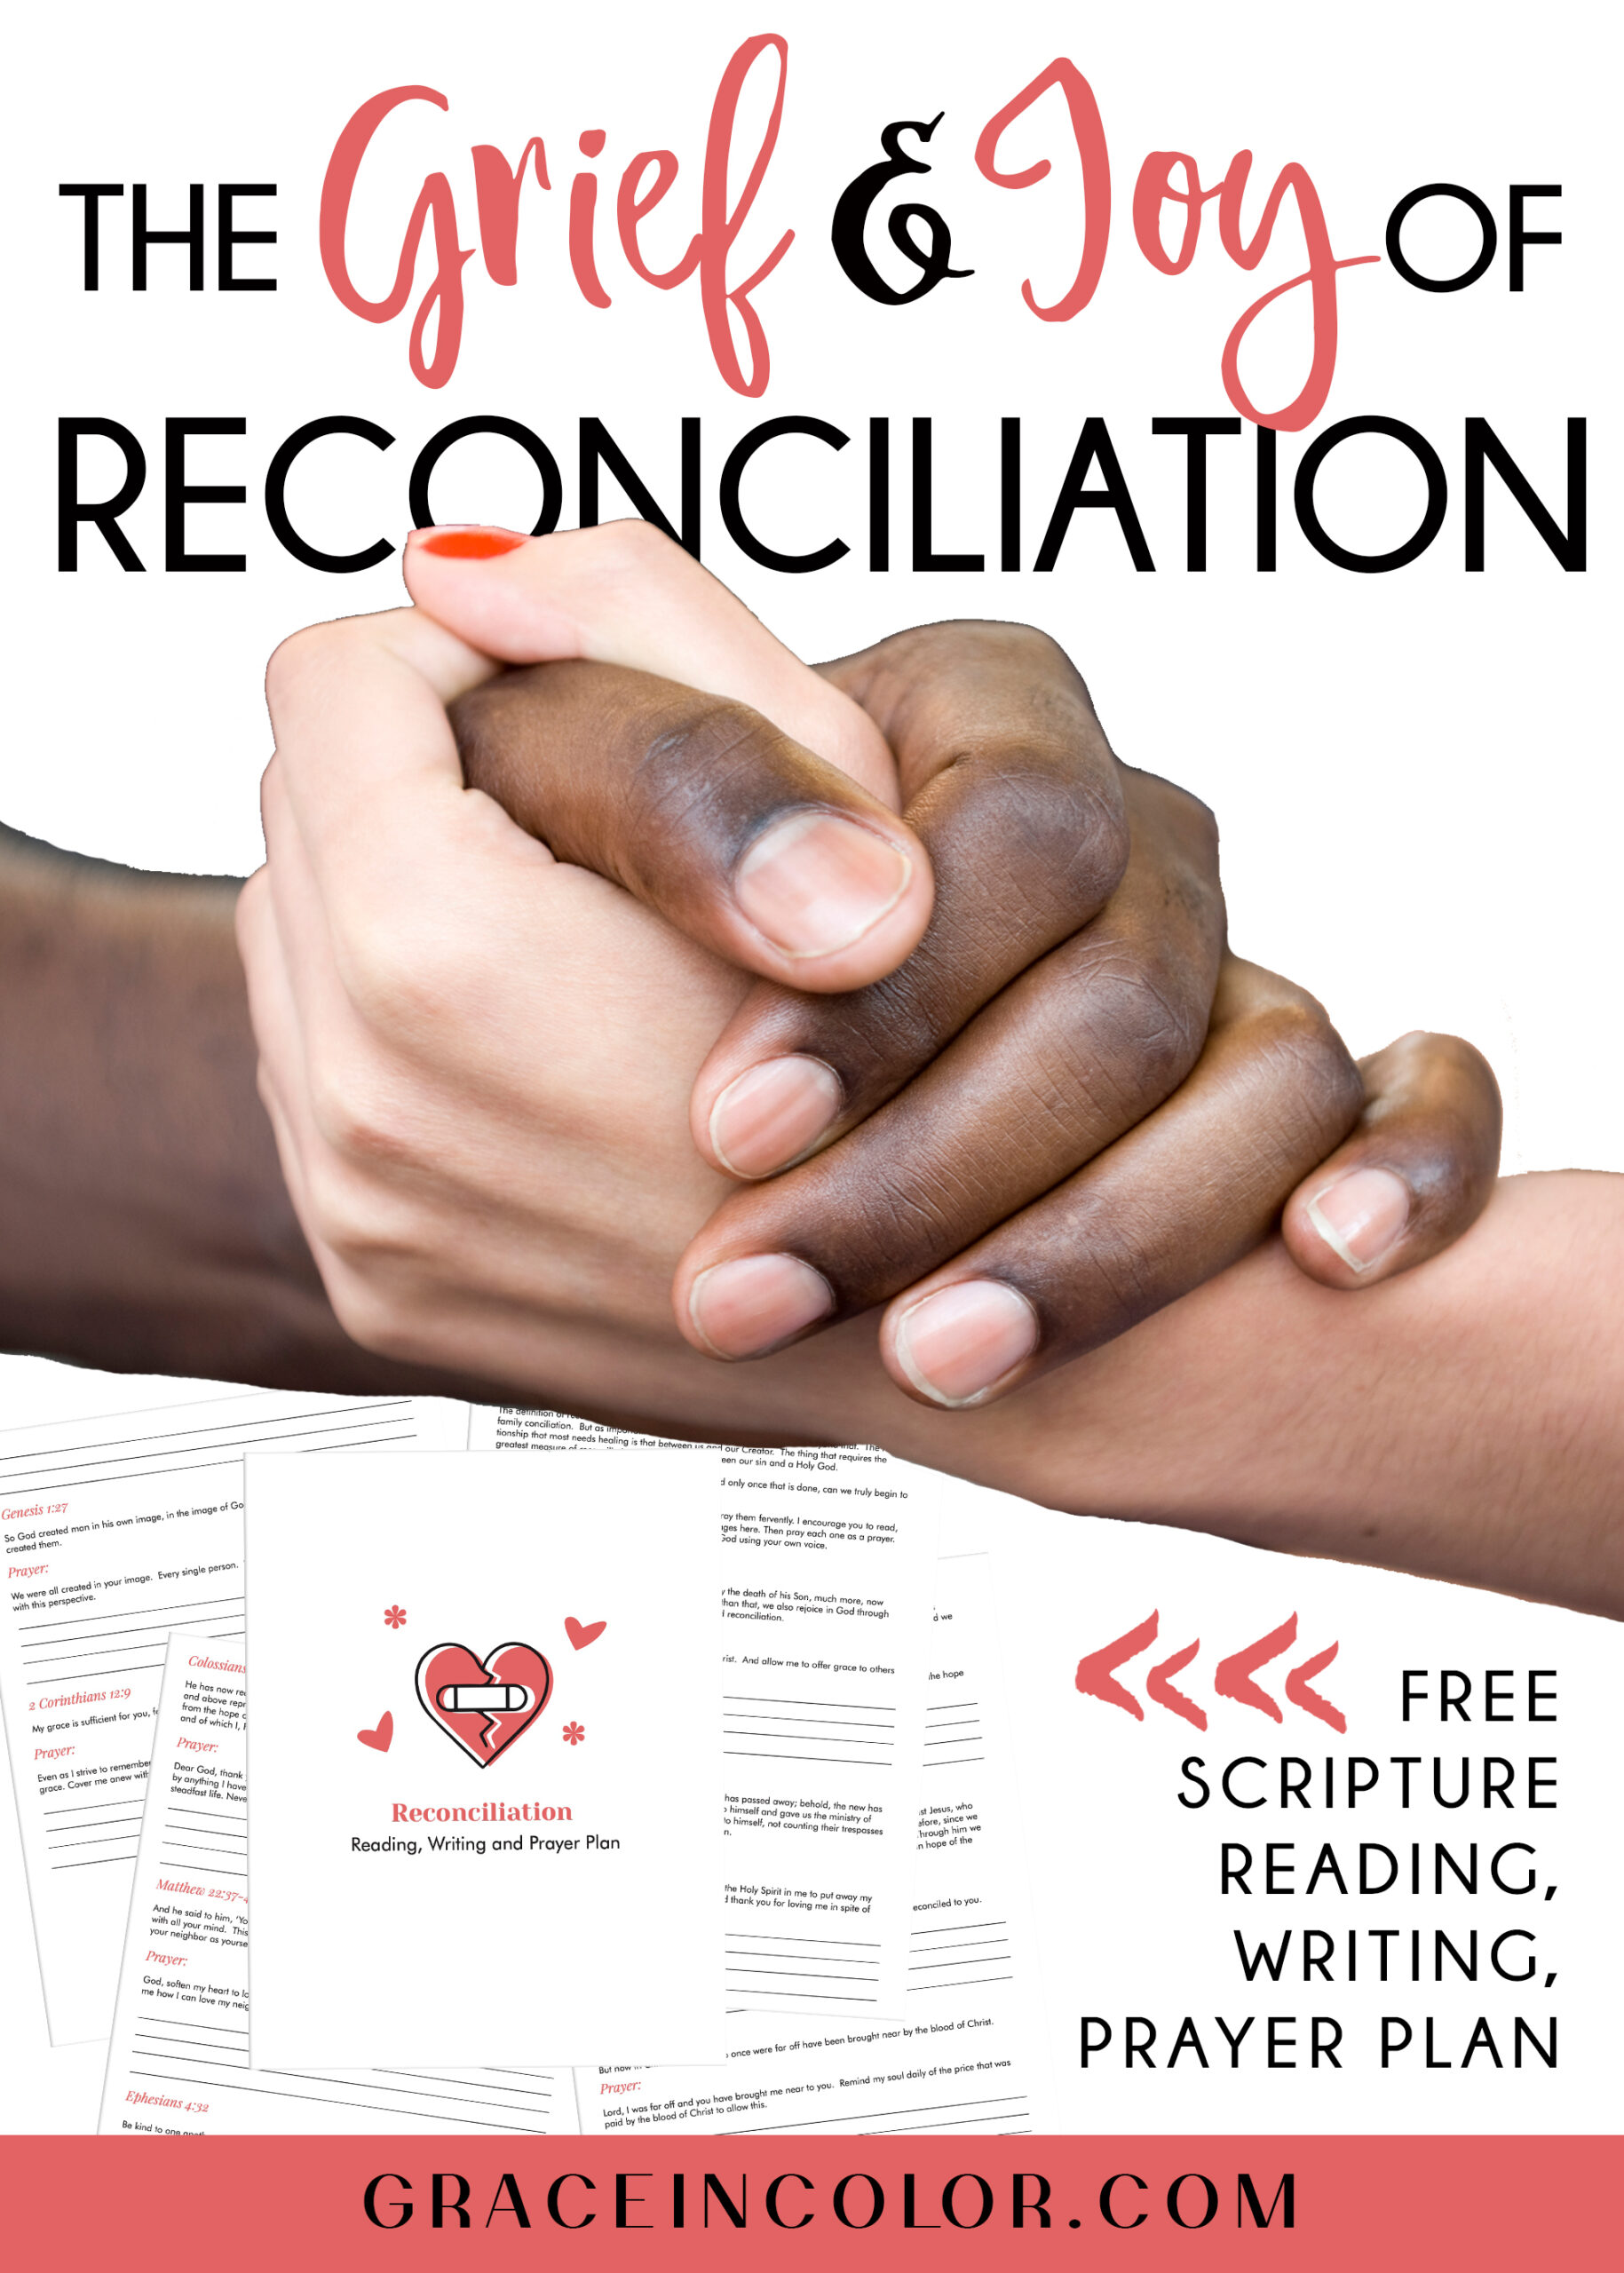 The Grief and Joy of Reconciliation by Grace in Color